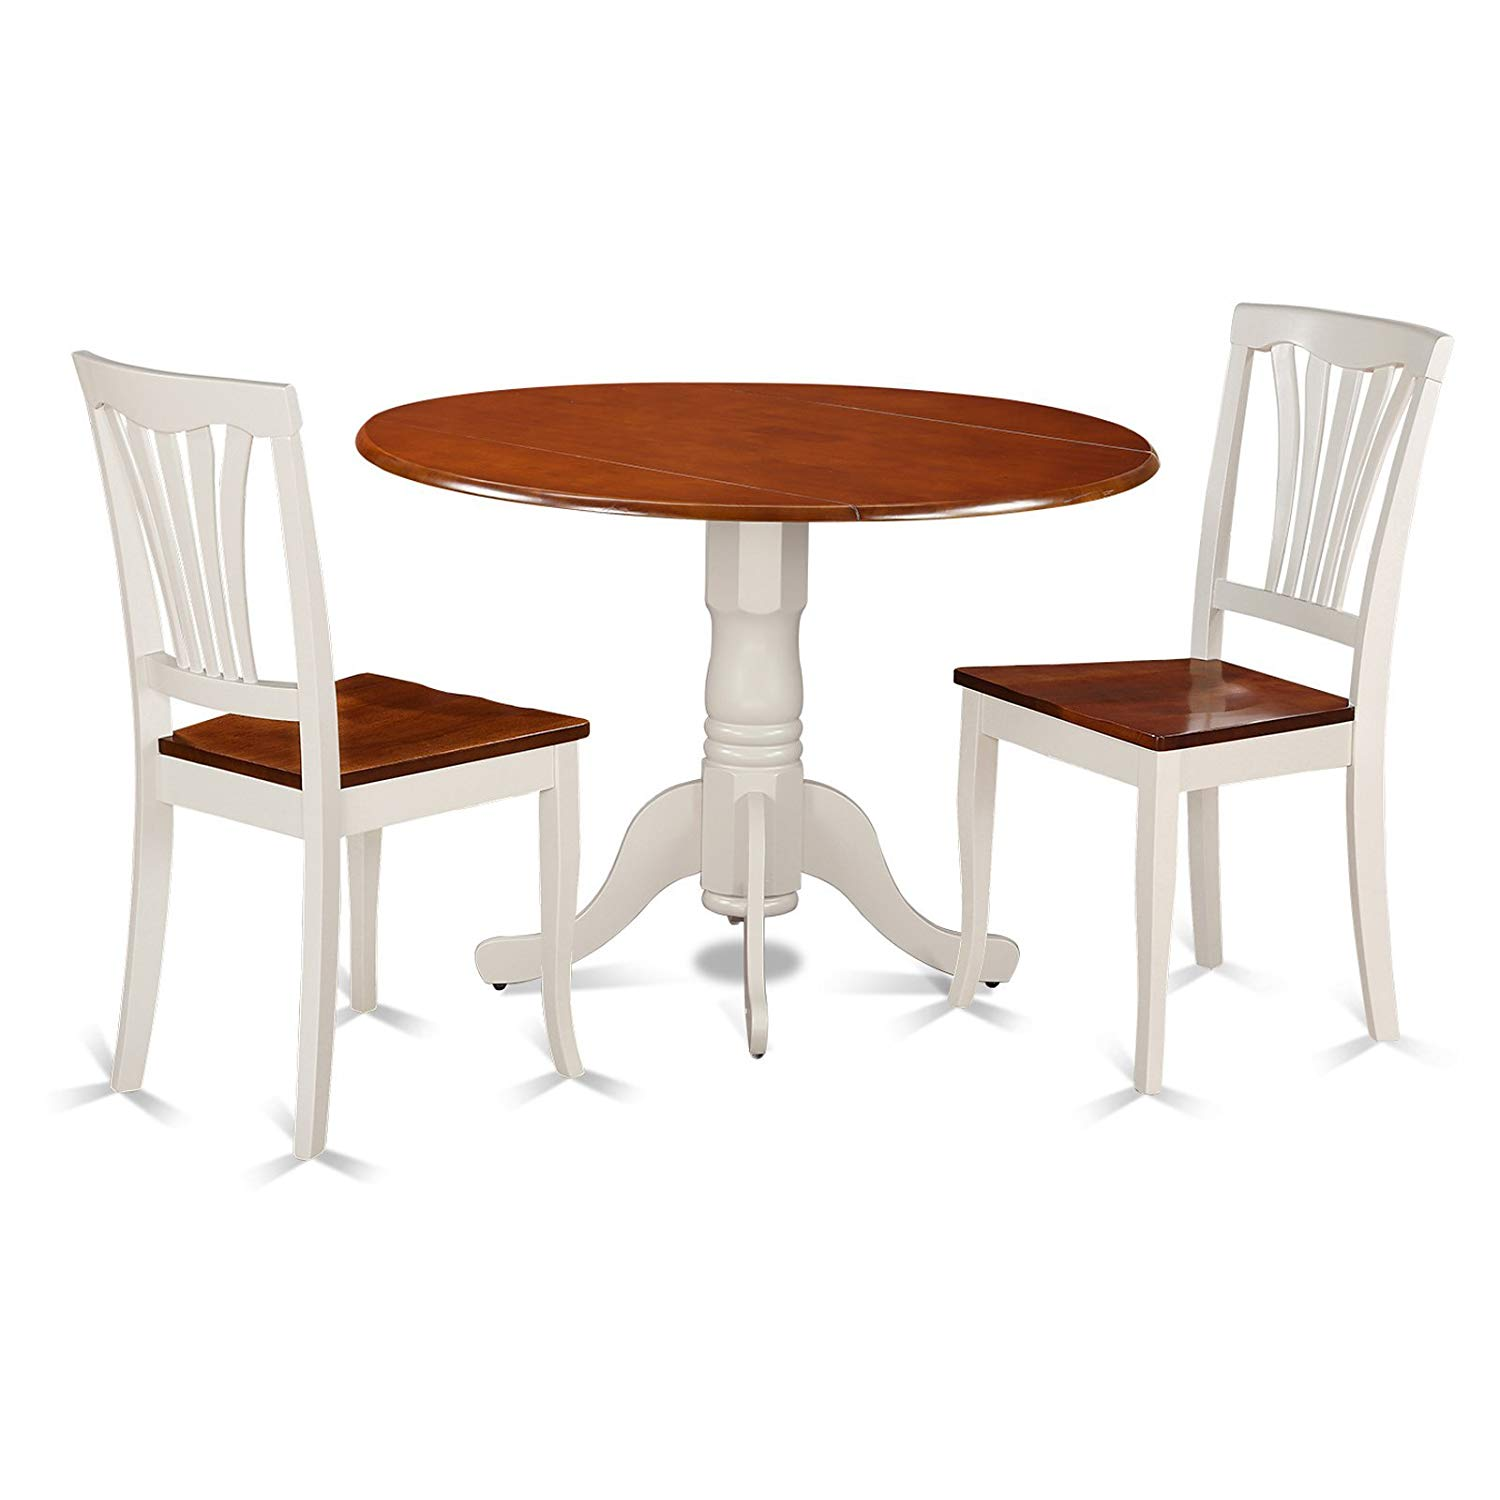 Piece Round Dining Table Set with Wooden Seat Chairs, Includes a Round Drop-Leaf Table with Classic Turned Pedestal Base, Two Fanned-Back Chairs, The Perfect Way to Finish your Small Dining Space